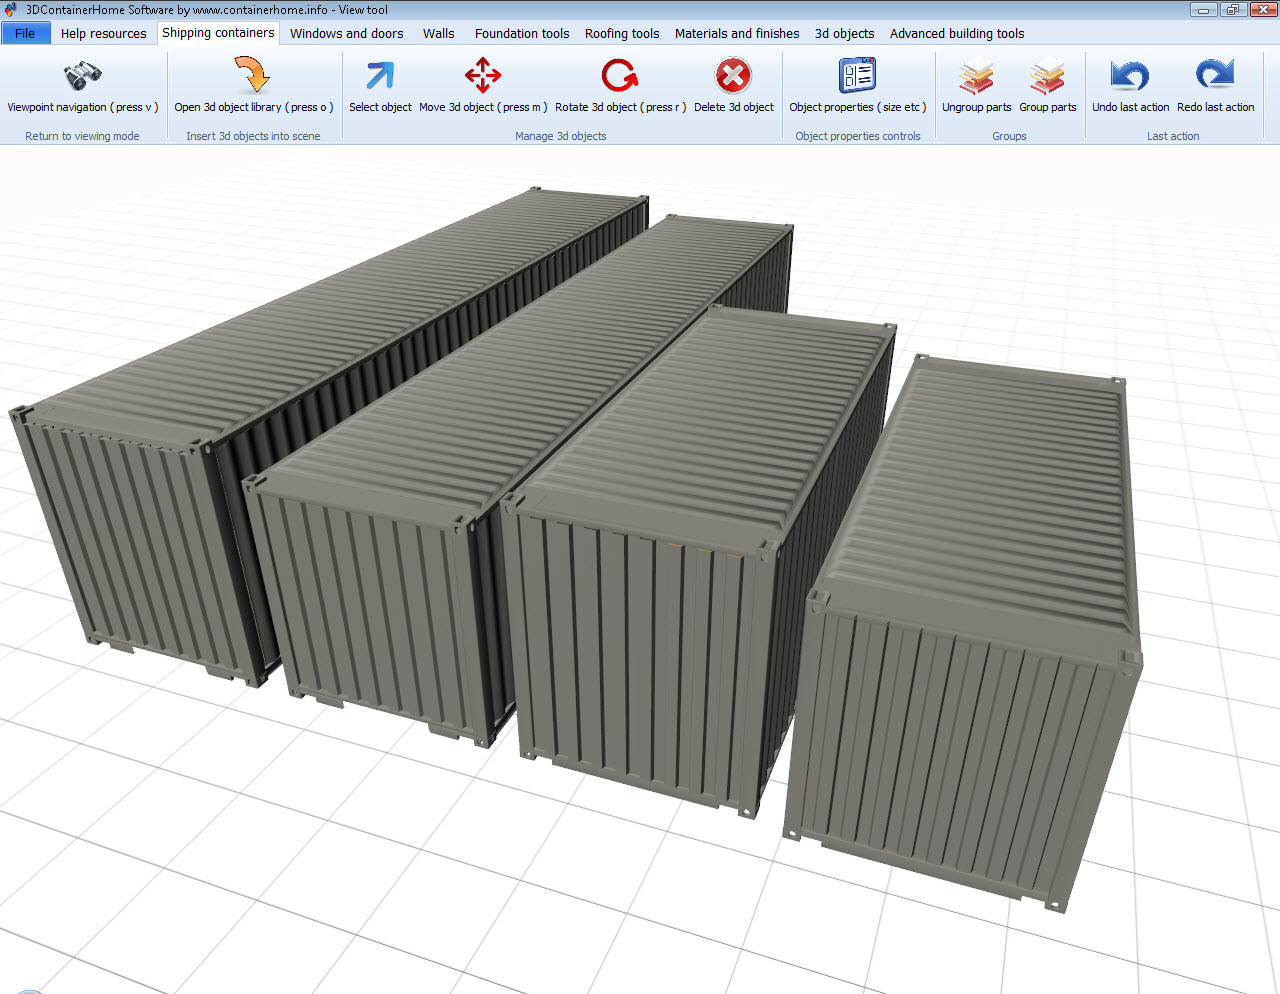 ... Shipping Container Home Free 3d Container Home Design Software Index Of  Wp Content Uploads 2012 06 ...